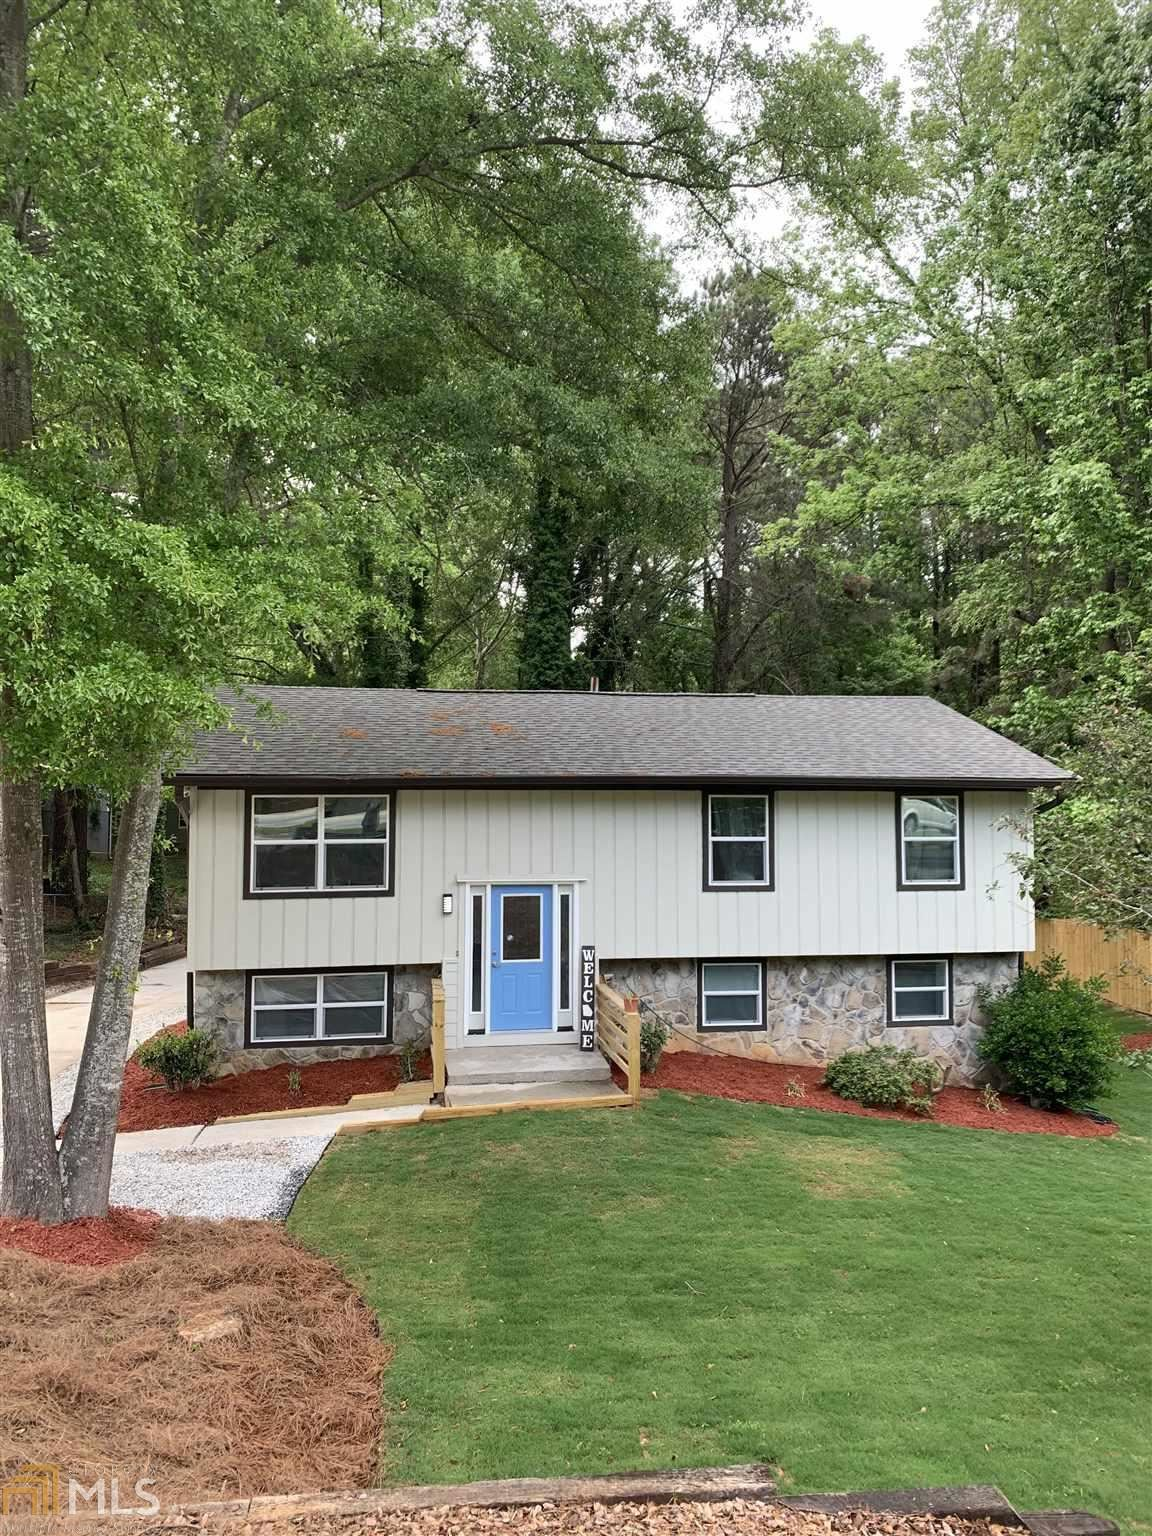 Photo of 2403 S South Hairston Rd, Decatur, GA 30035 (MLS # 8971905)